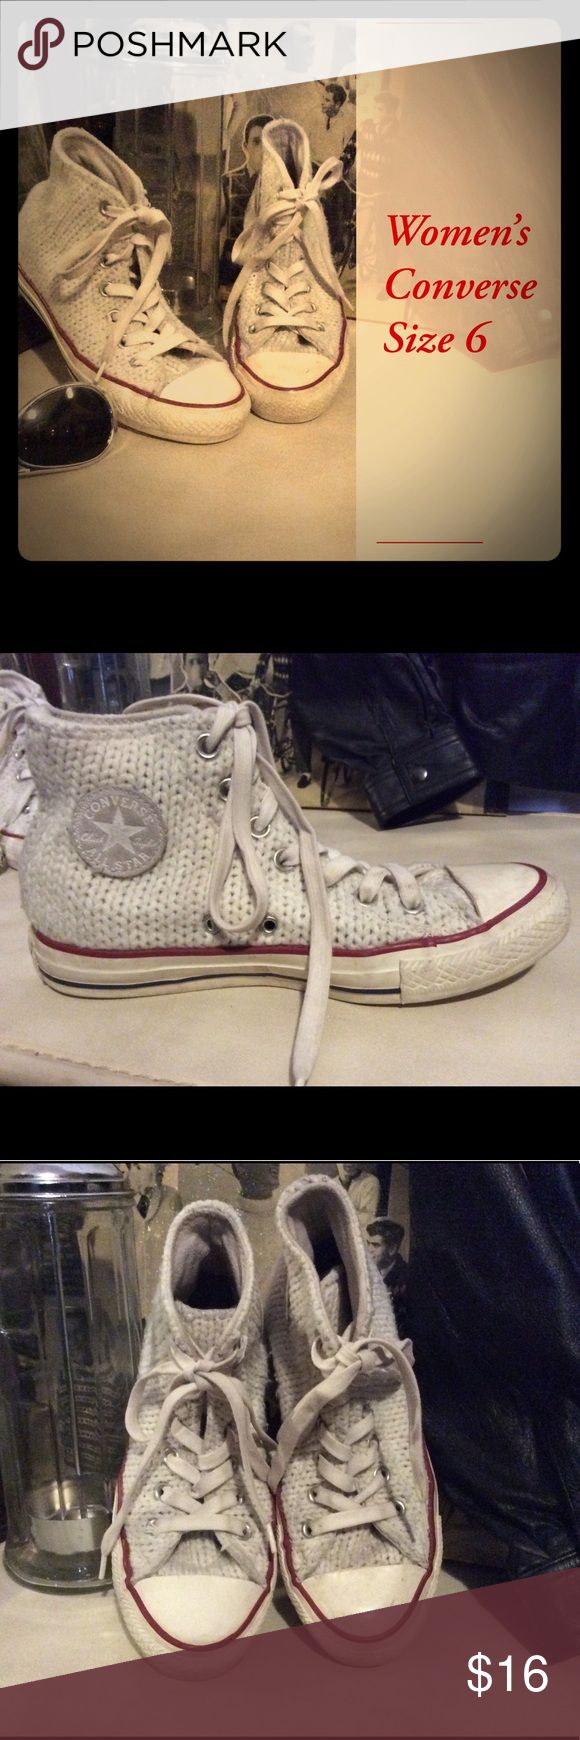 Women's Off White Sweater Converse Size 6 Women's size 6 Sweater Converse shoe Cute off-white shoes. Converse sizing is a bit different. I usually wear a 6.5 in other shoes but these fit me well. Just not really my style.  I hand washed them to make sure the tops were clean. Light pilling in spots.  Non-smoking environment. Cat-friendly (not really, but he lives here & sneaks in the posh room when we're not looking) environment.  I try to ship within 24hrs of sale. Converse Shoes Sneakers